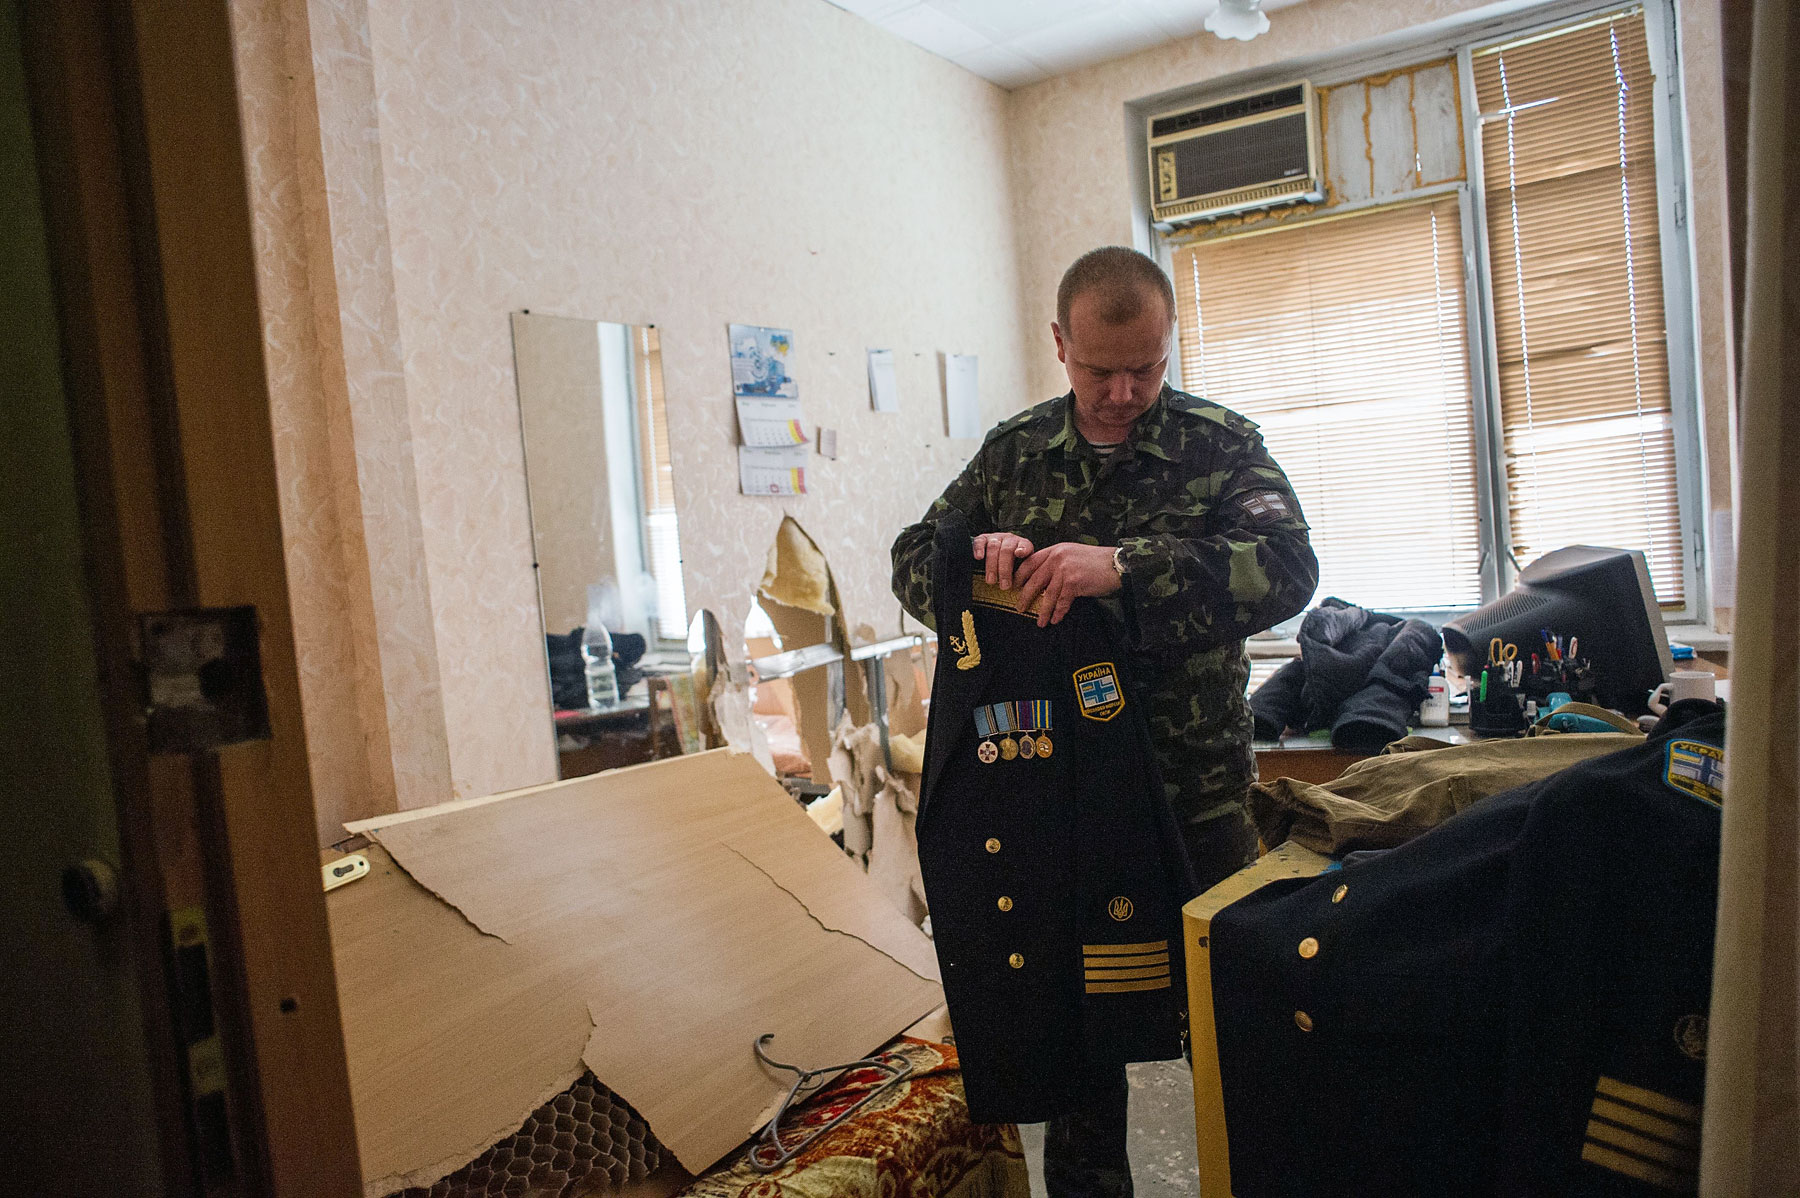 A Ukrainian serviceman packs his things in the Ukrainian navy headquarters after it was stormed by Crimean pro-Russian self-defense forces in Sevastopol, Crimea, March 19, 2014.